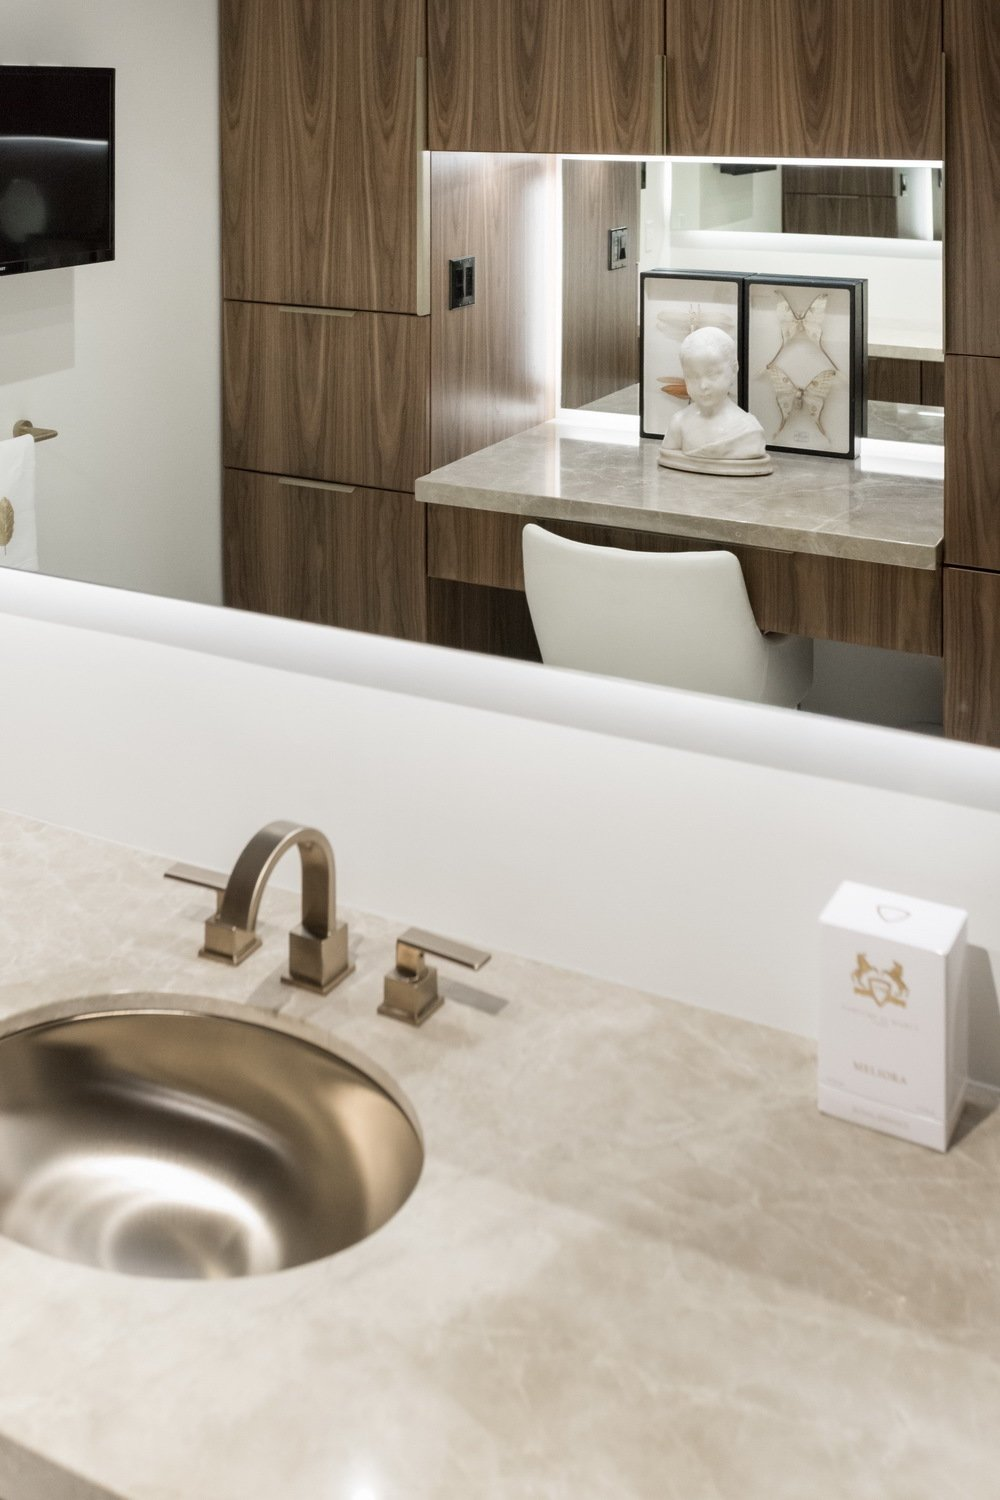 In tight quarters the mirrors help to expand views.  Thompson Hotel Private Suite by ANTHONY PROVENZANO ARCHITECTS